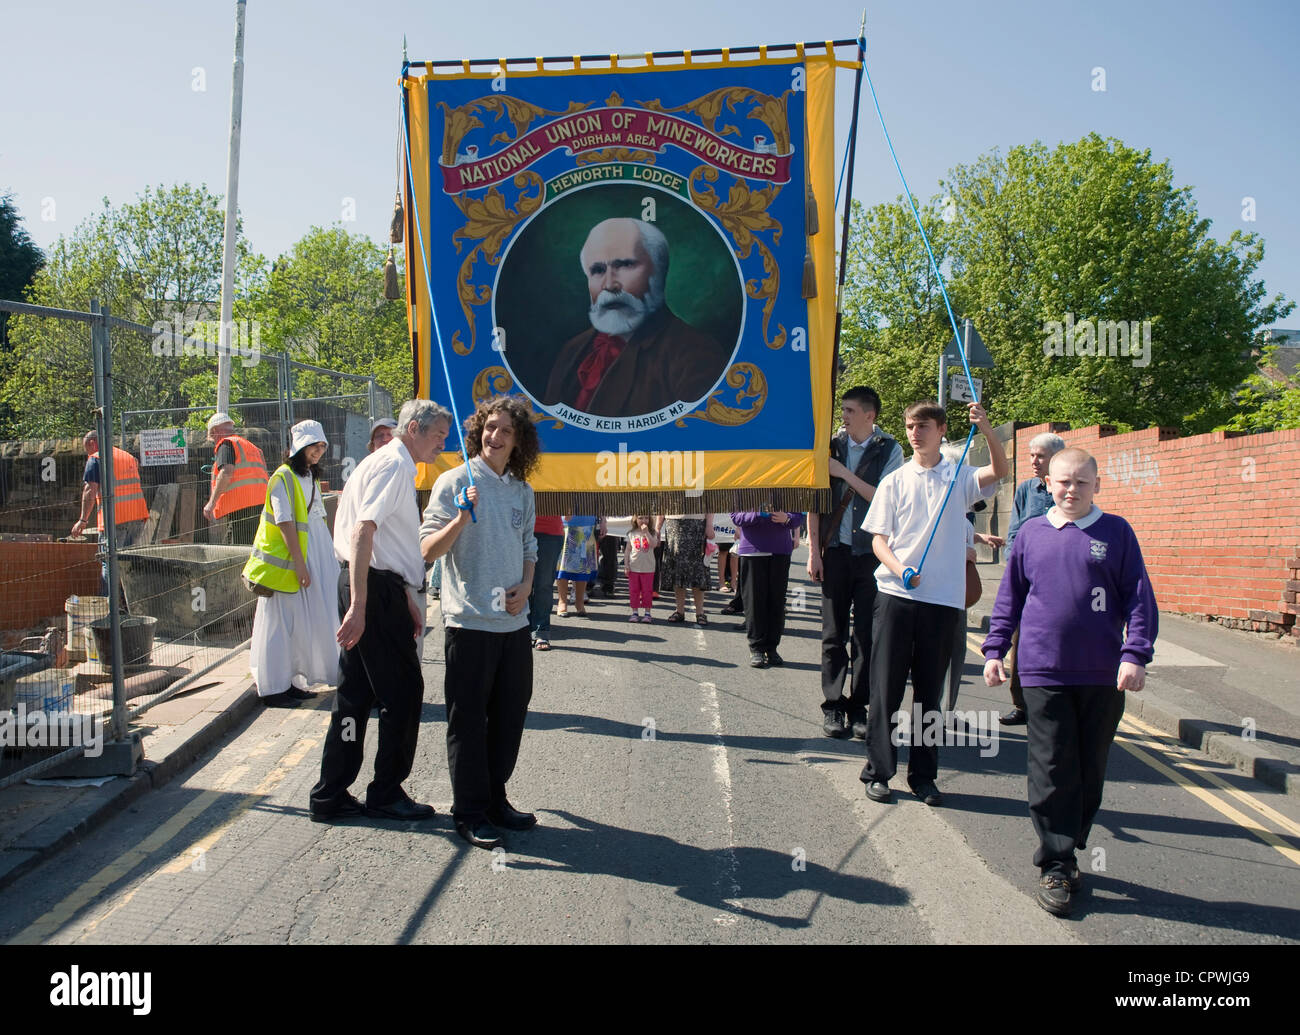 March commemorating the Felling mine disaster of 1812. - Stock Image